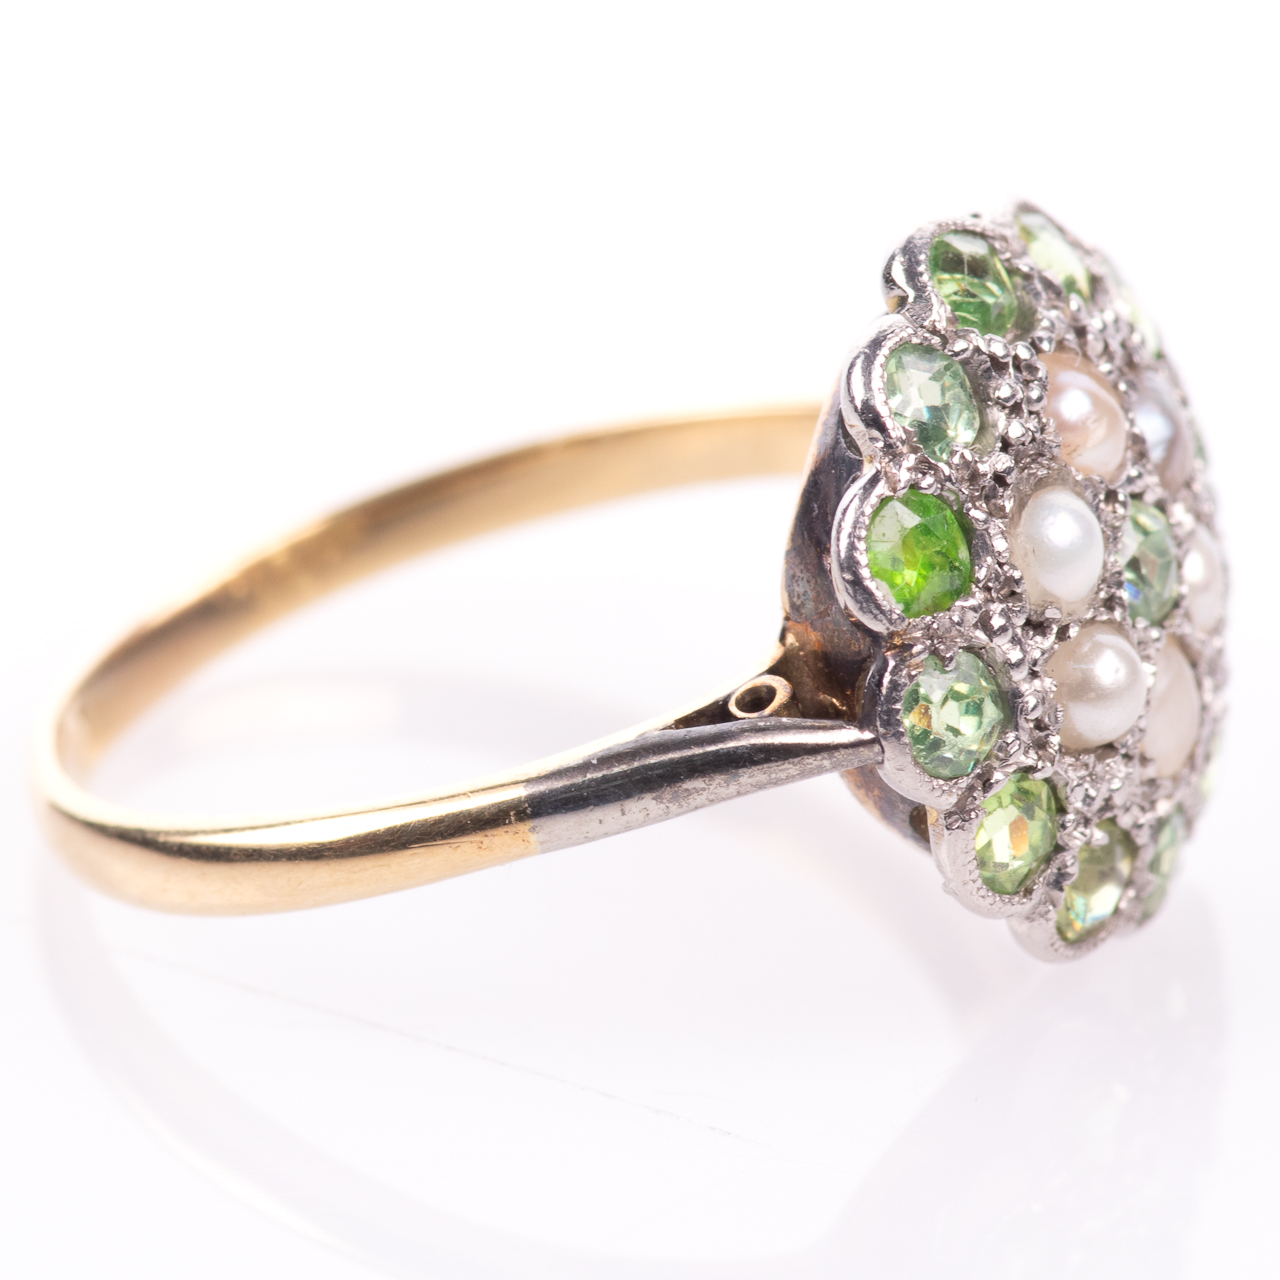 18ct Gold Victorian Peridot & Pearl Cluster Ring - Image 8 of 8